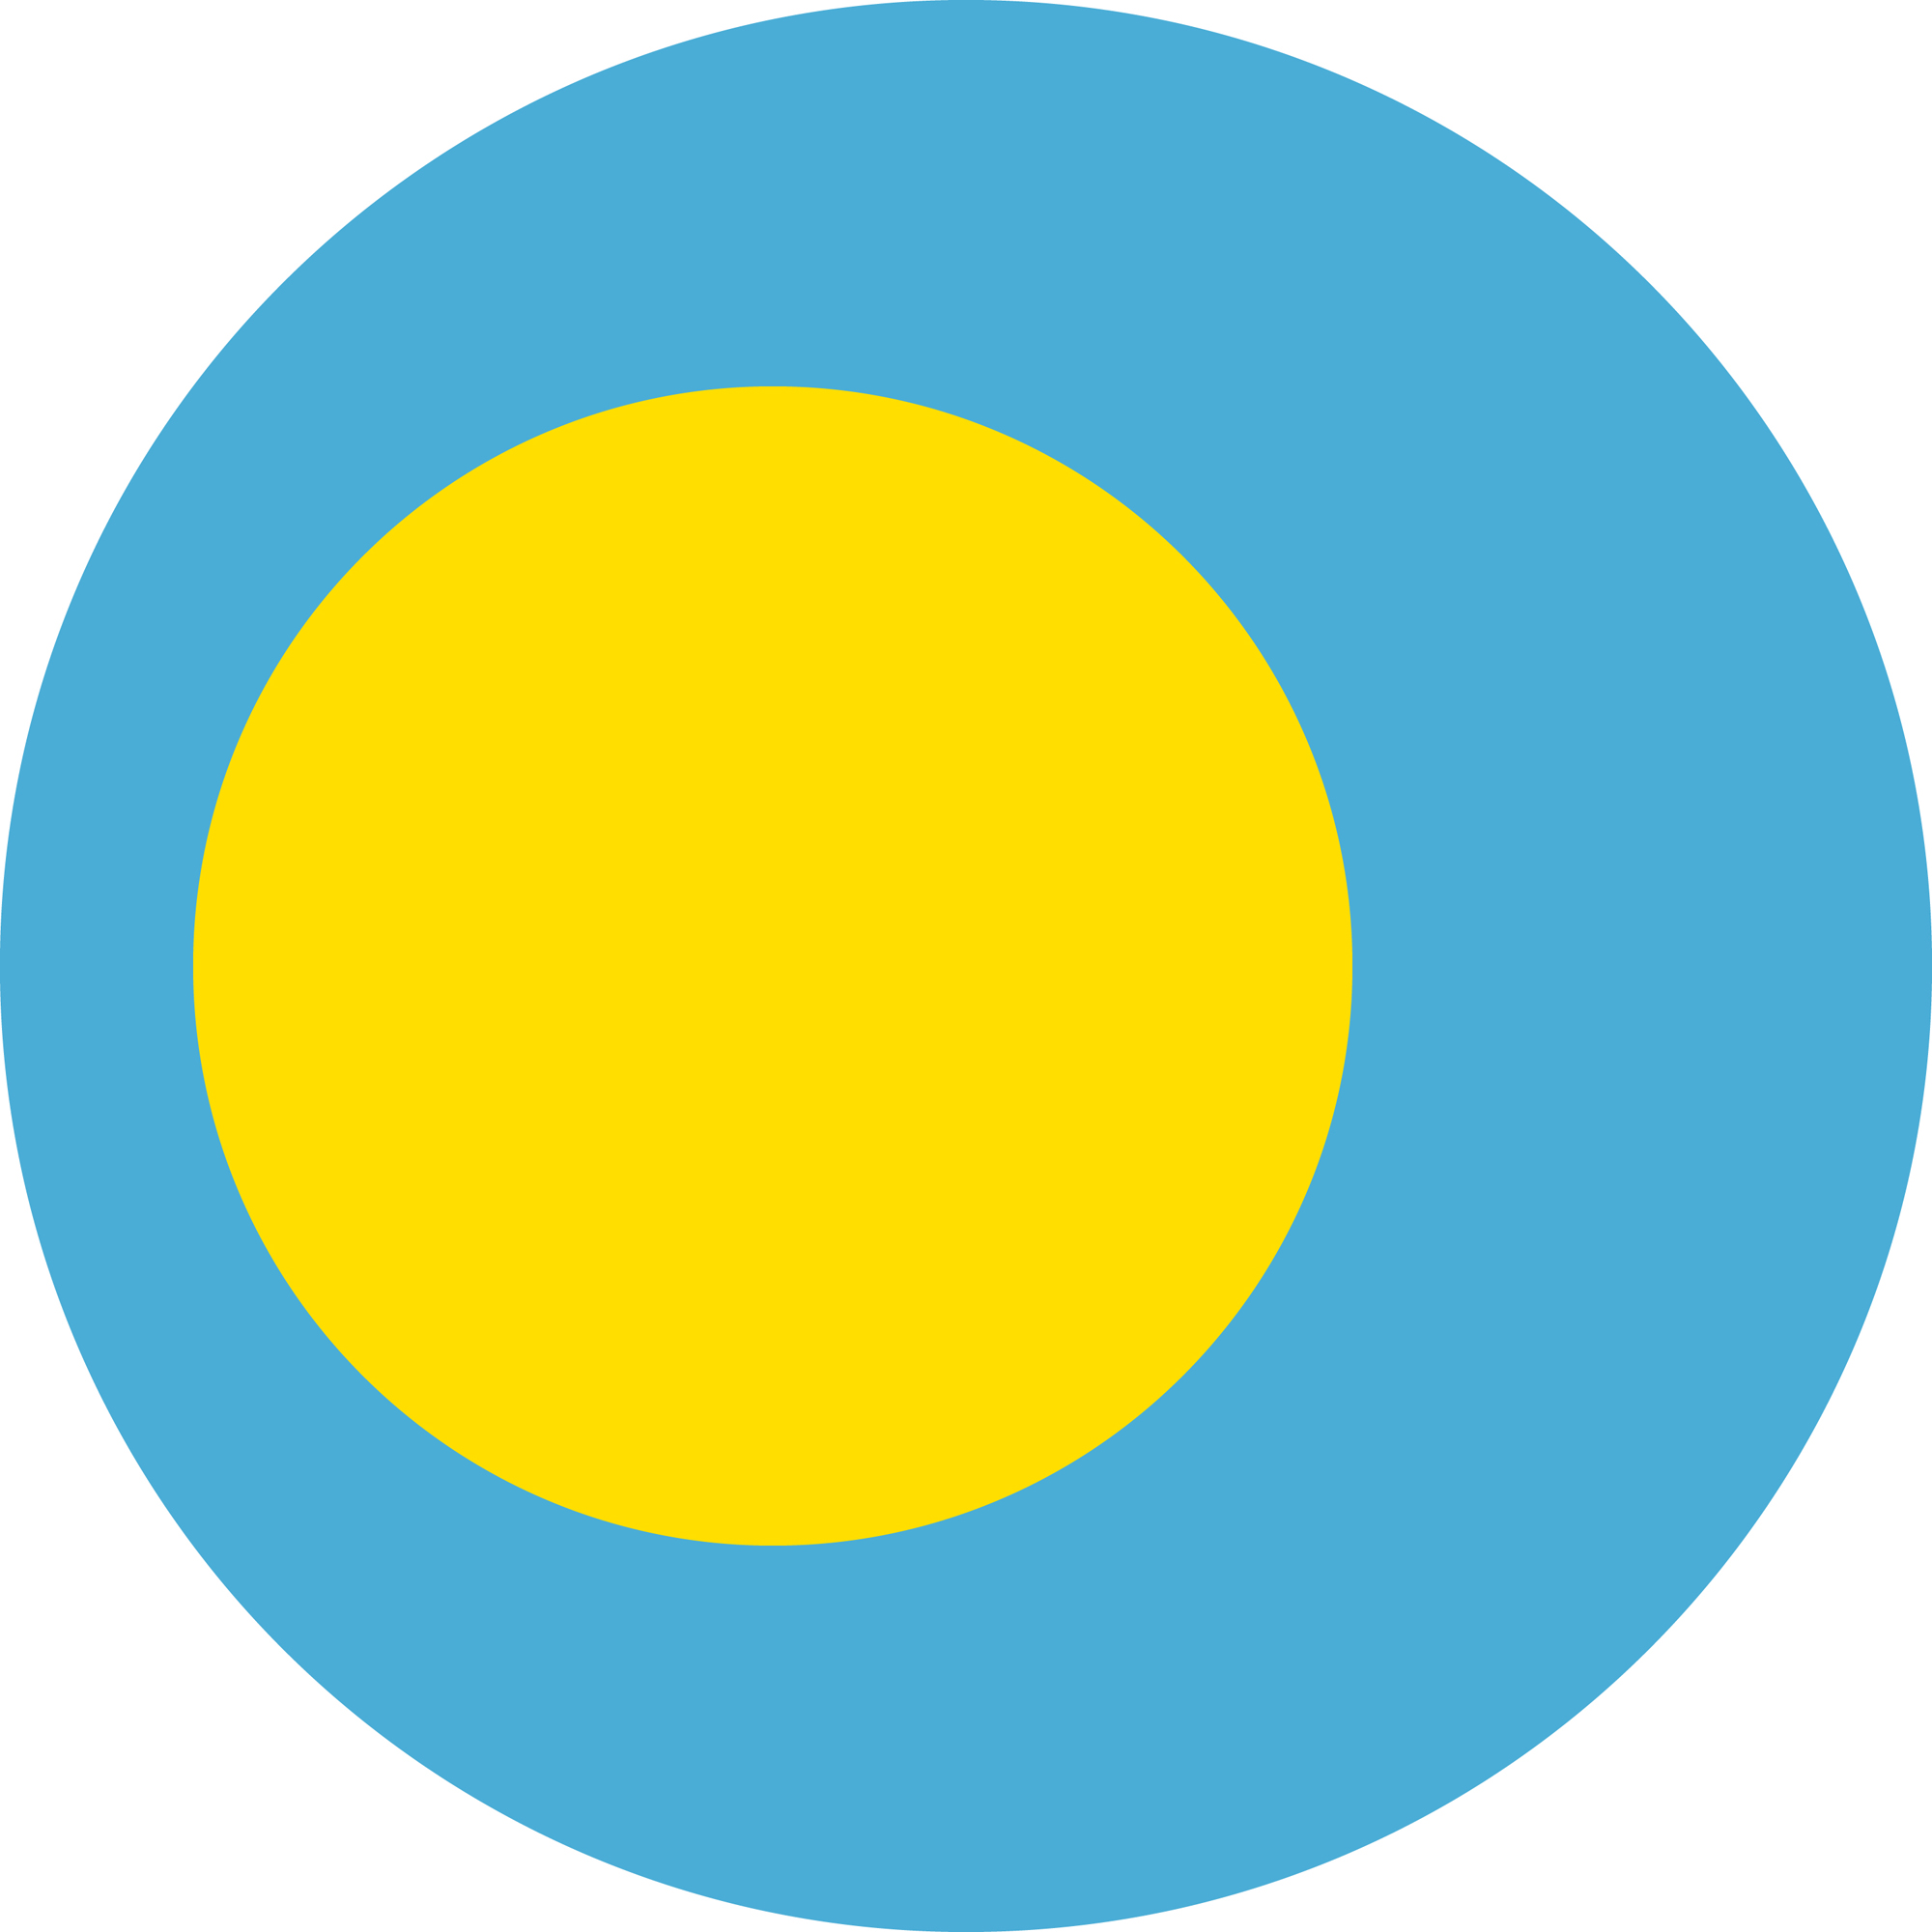 Flag of the Republic of Palau in a circular shape